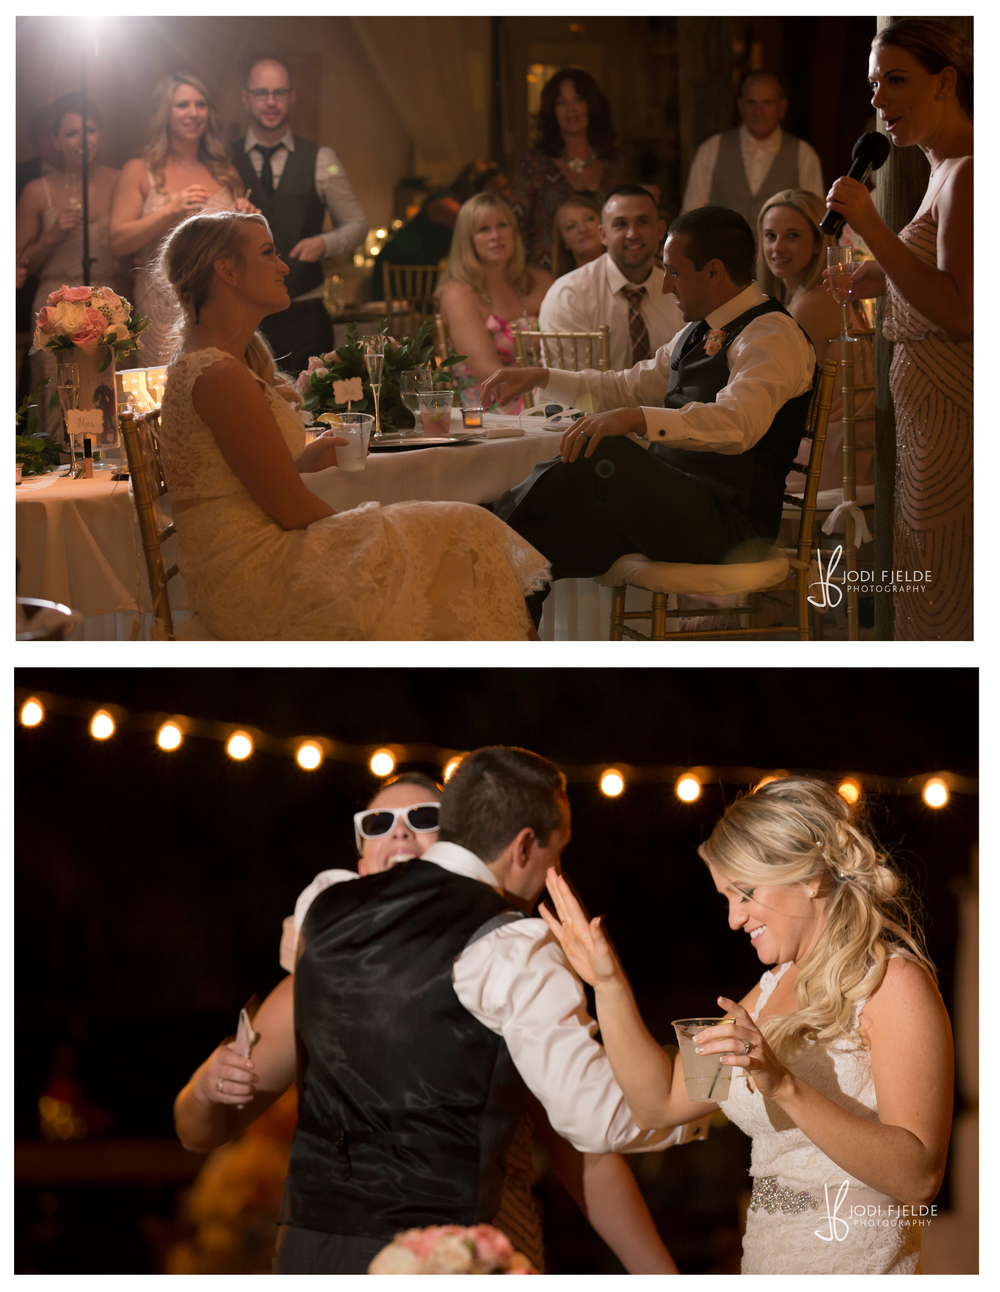 Cocconut_Cove_&_ Marina_ wedding_Kalie_and_Kurt  41.jpg